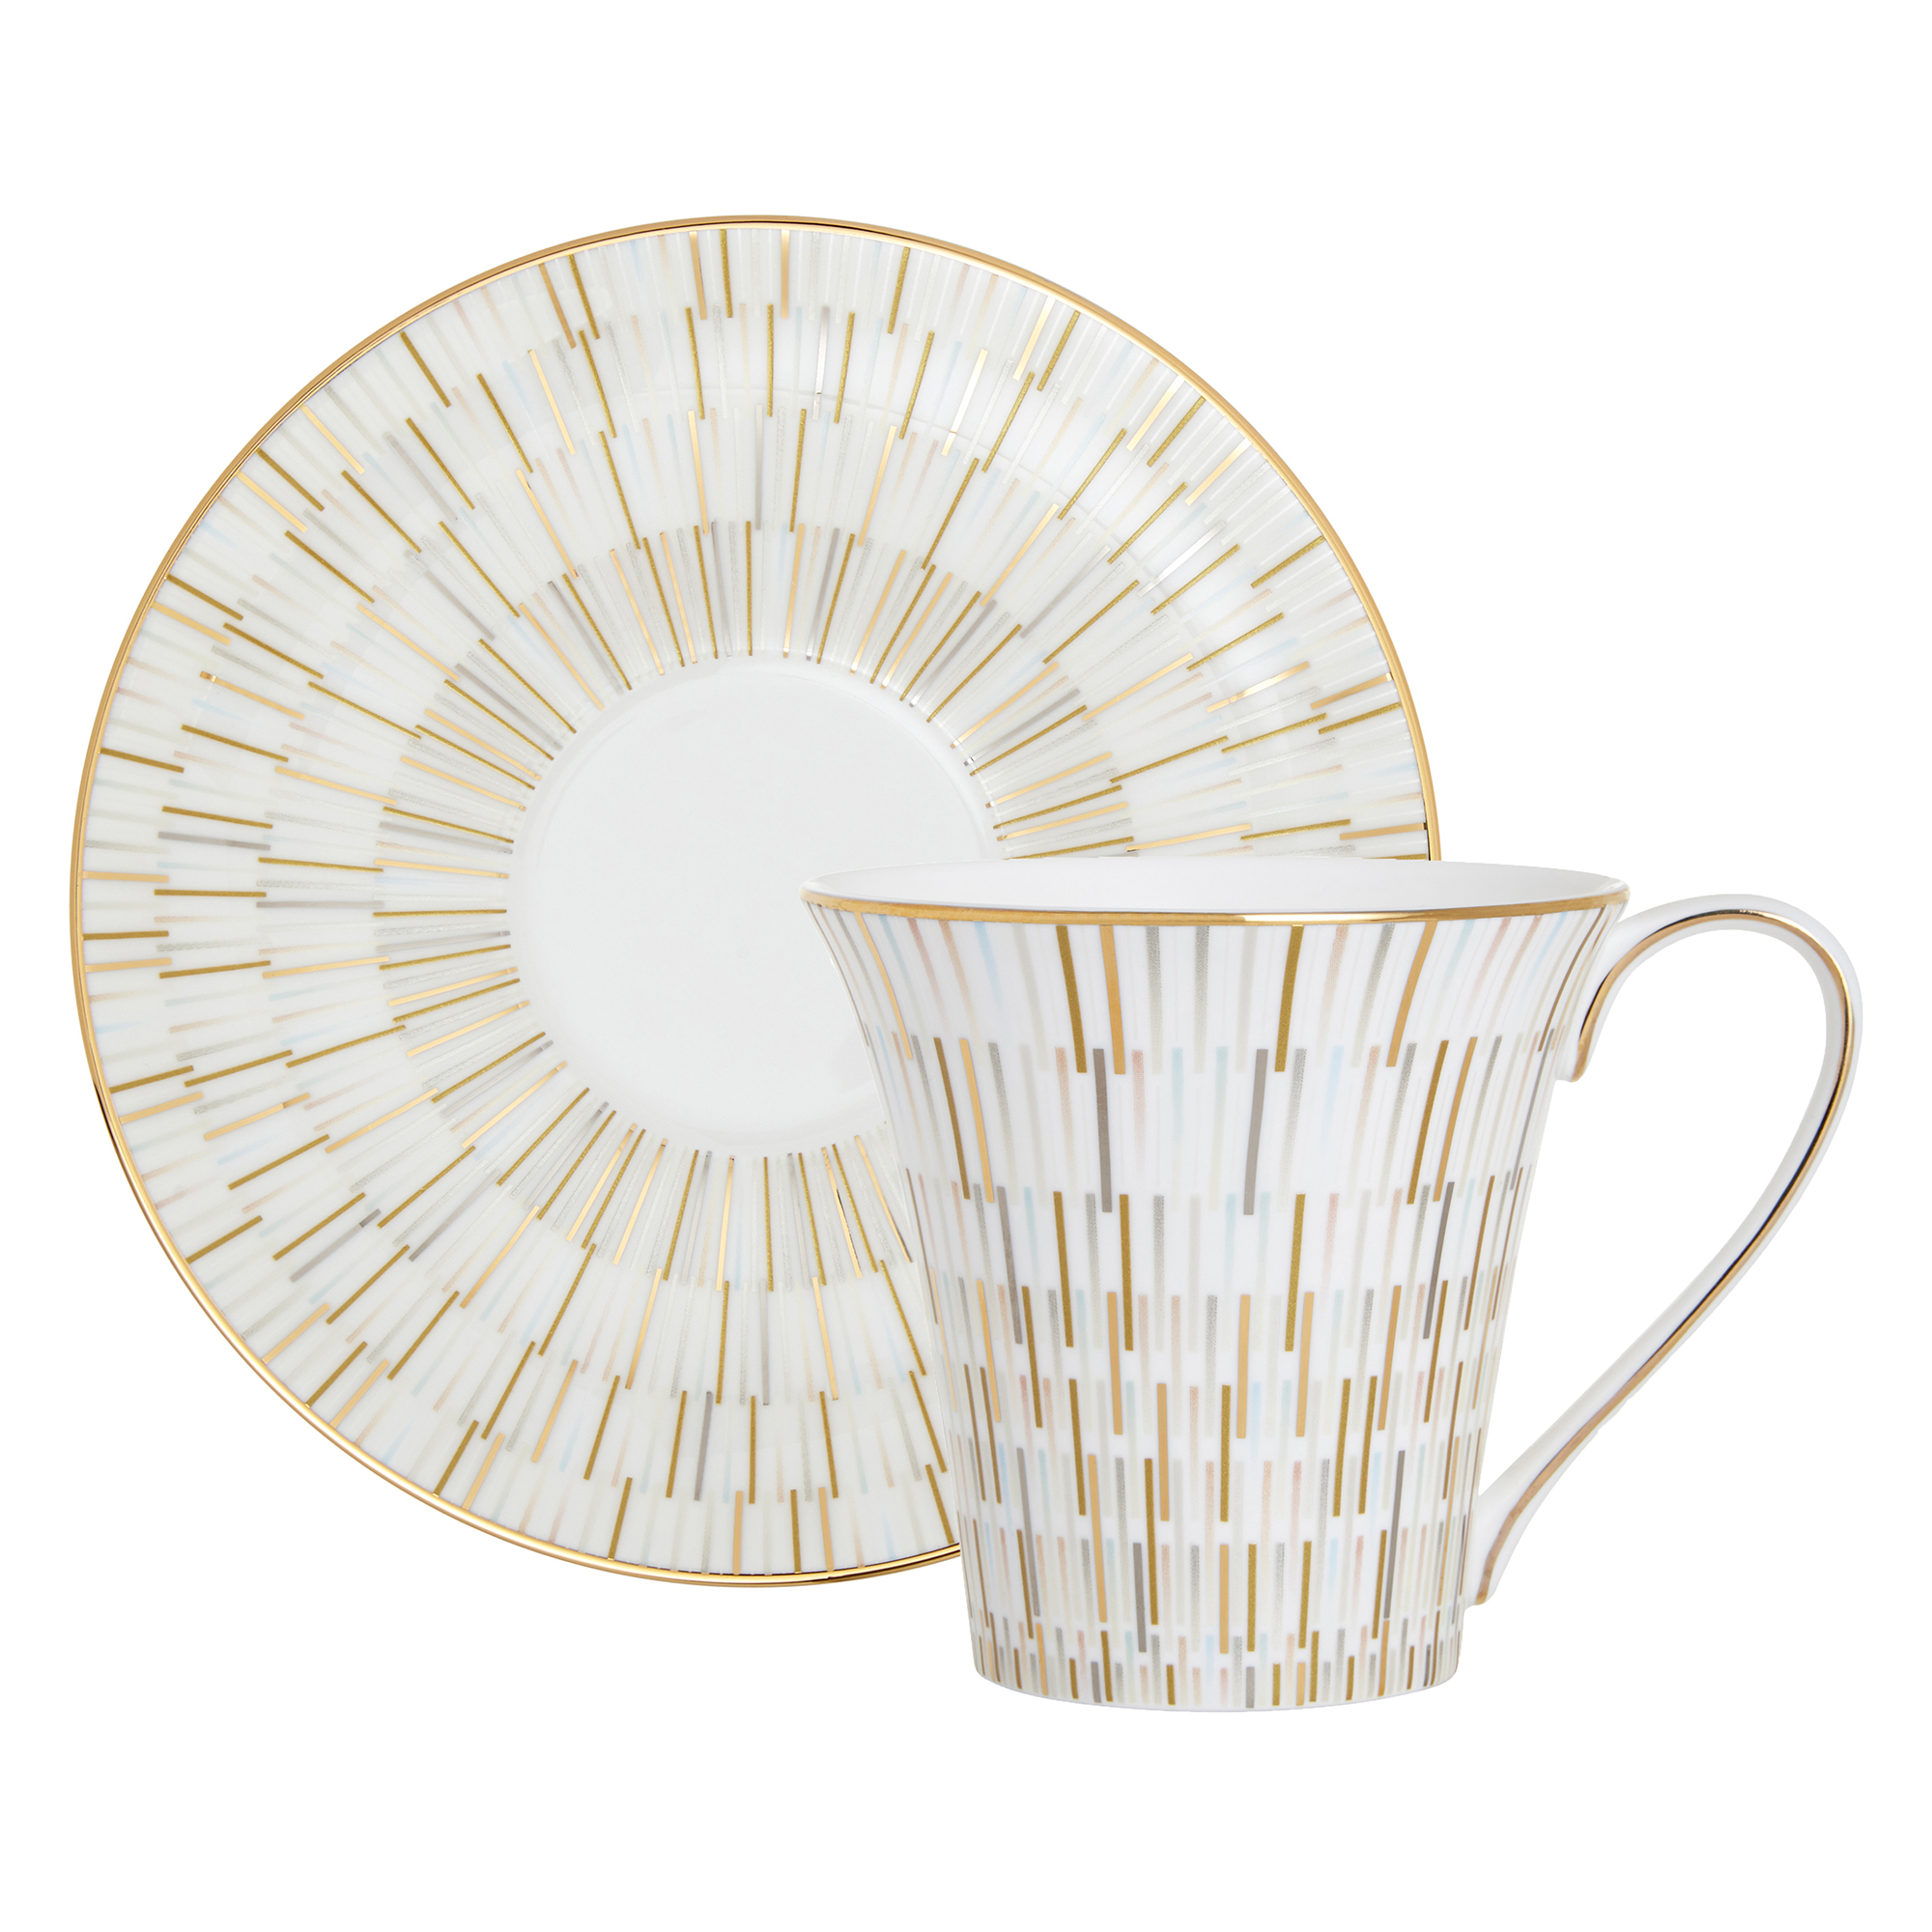 Prouna Luminous Teacup & Saucer